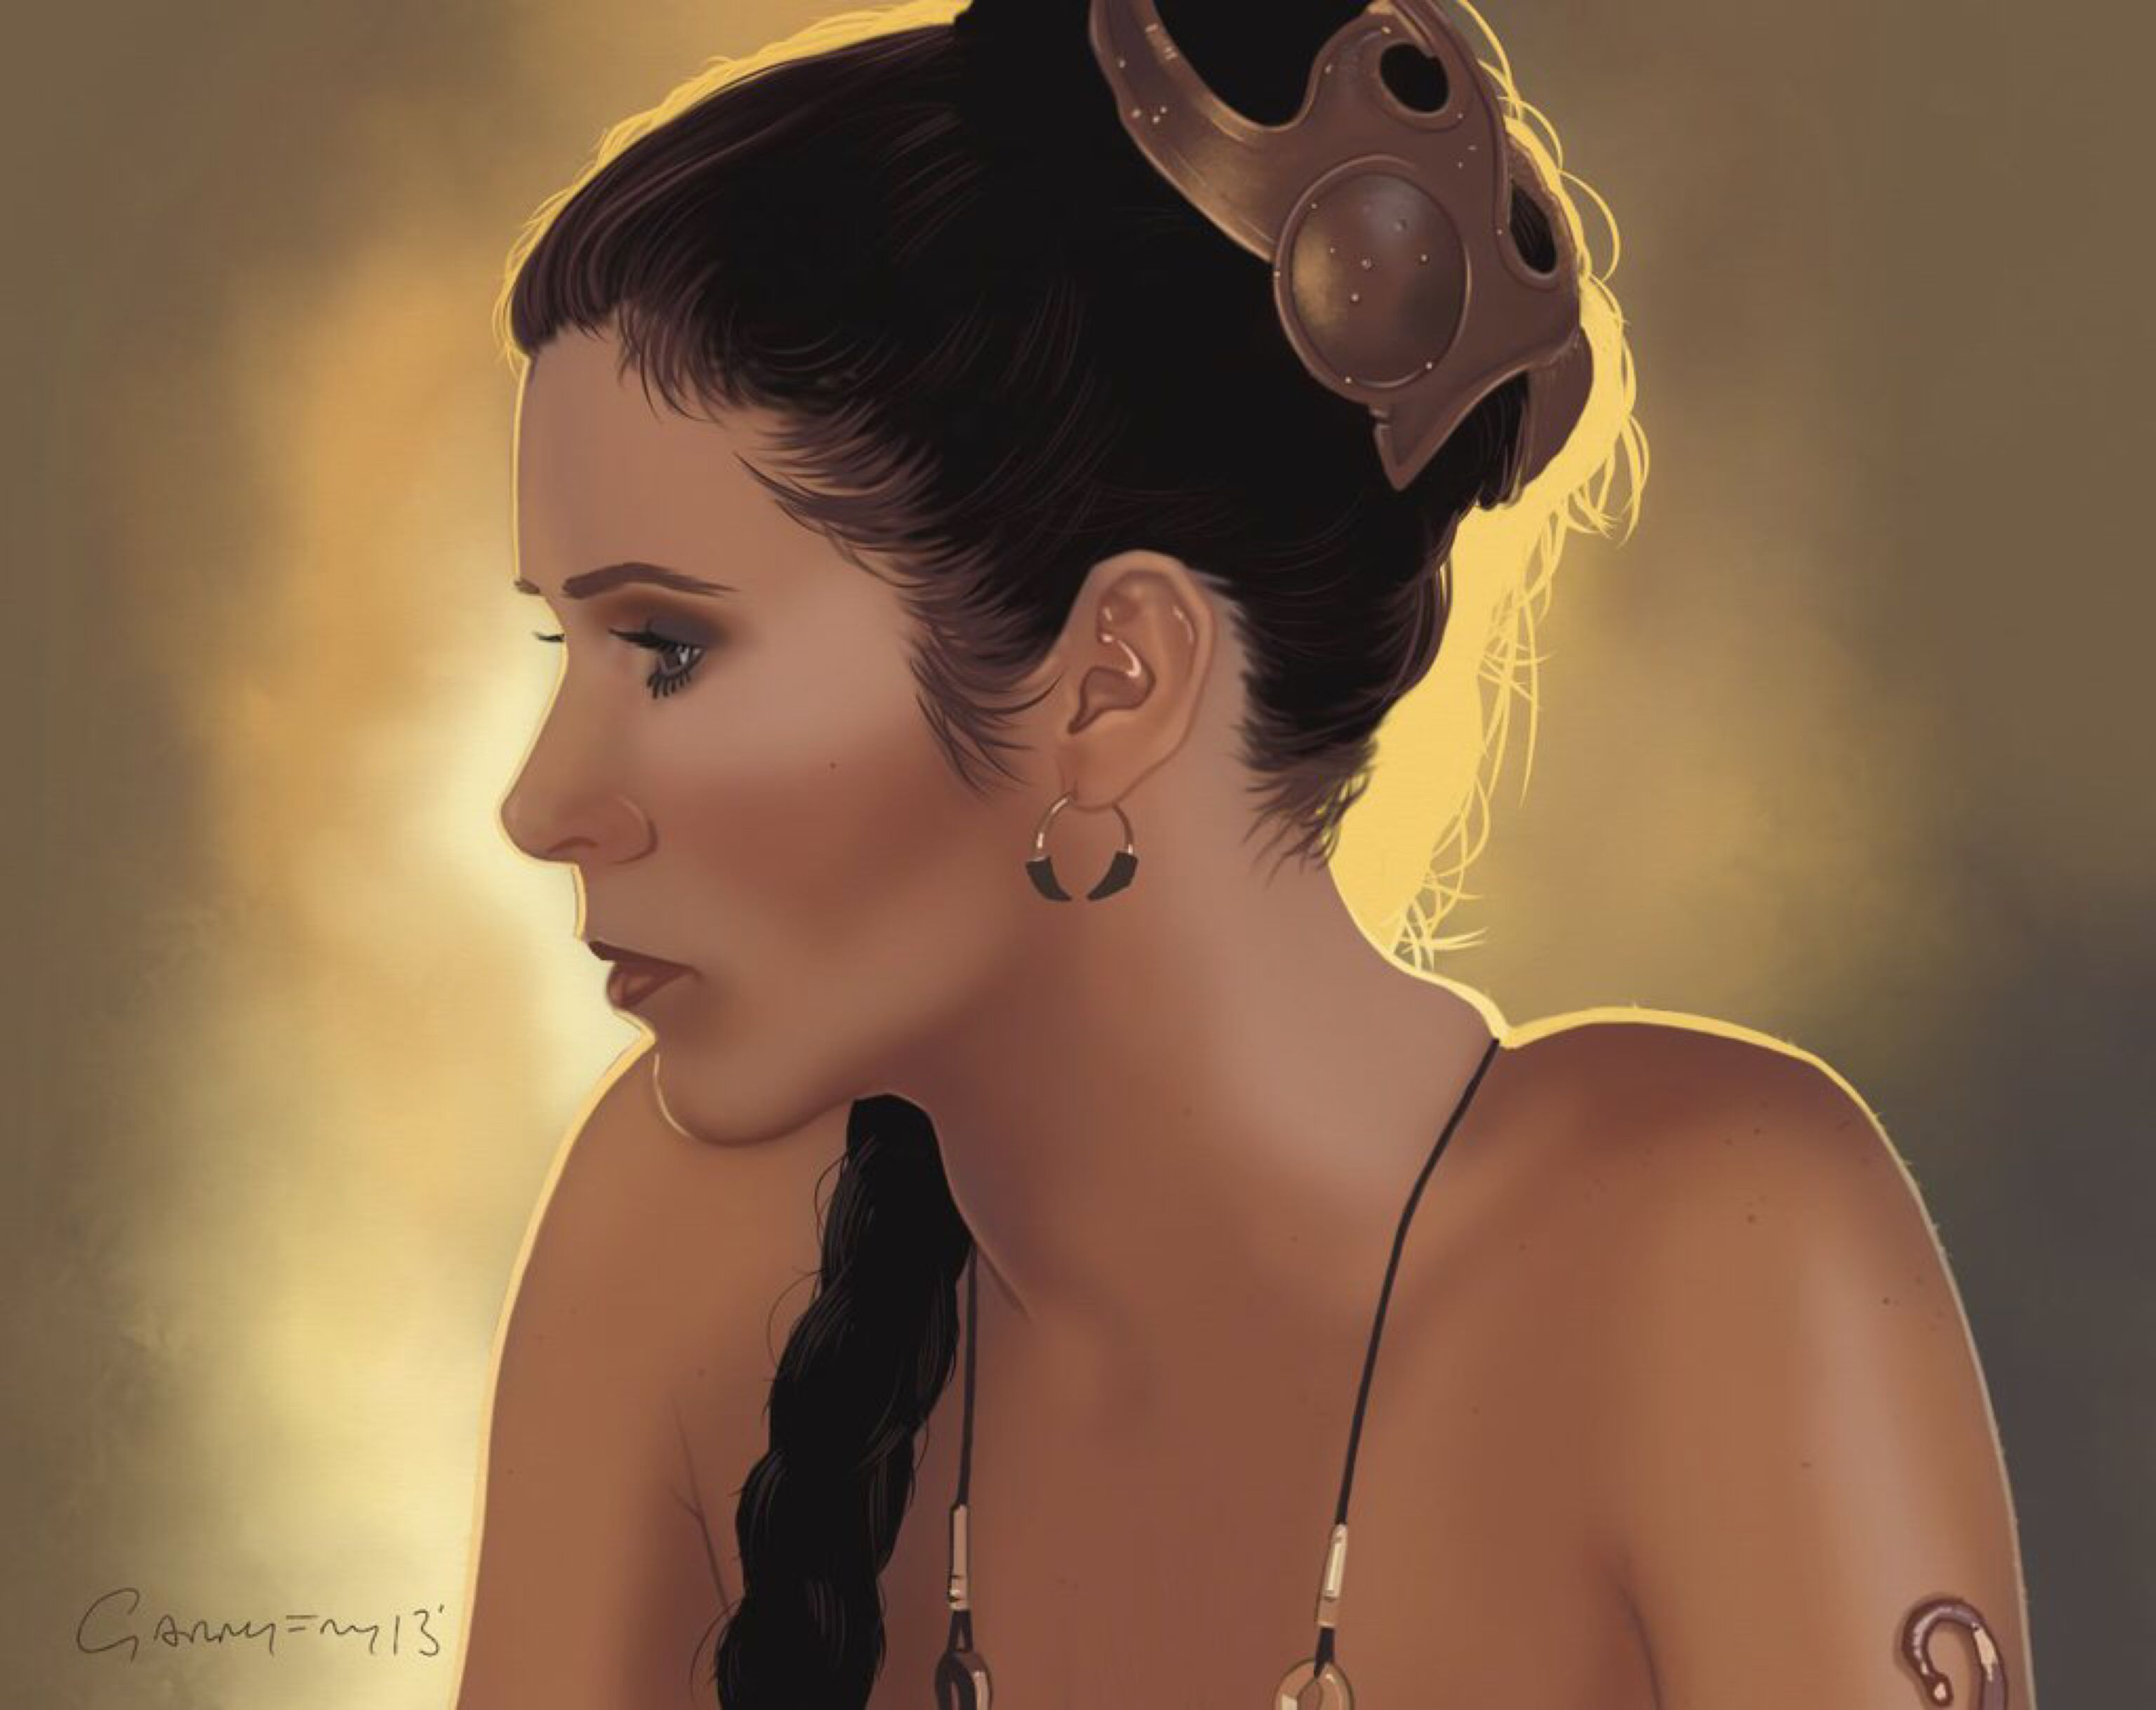 Princess Carrie Fisher (1956 - 2016)